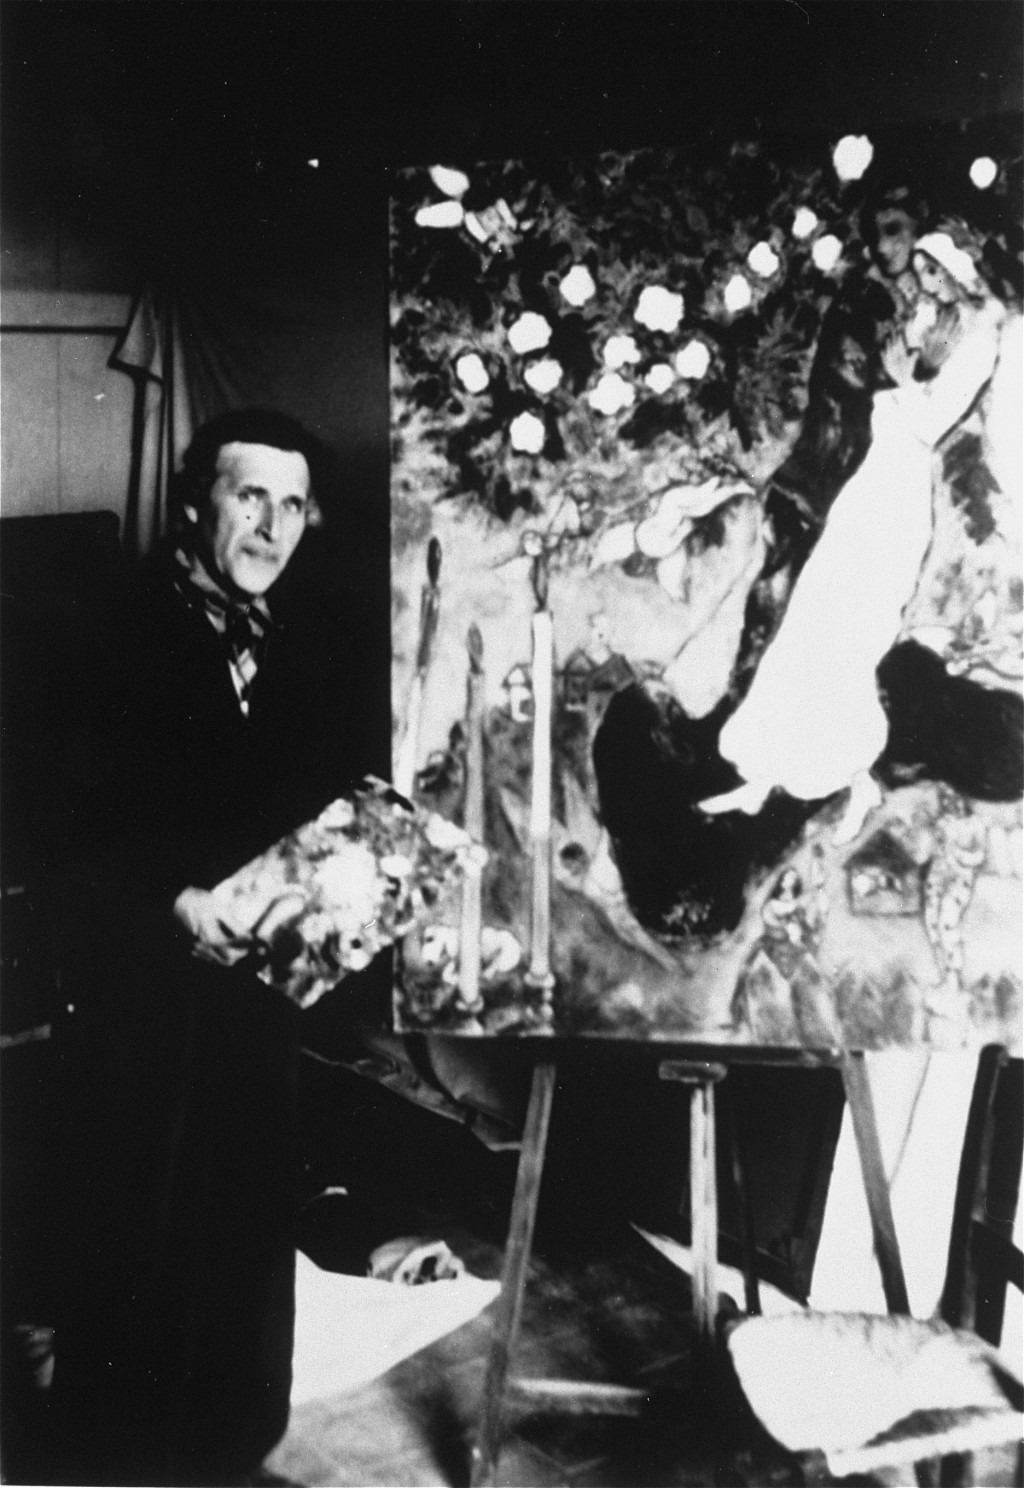 Marc Chagall, the Russian Jewish artist, at work in his studio in southern France. [LCID: 10116]